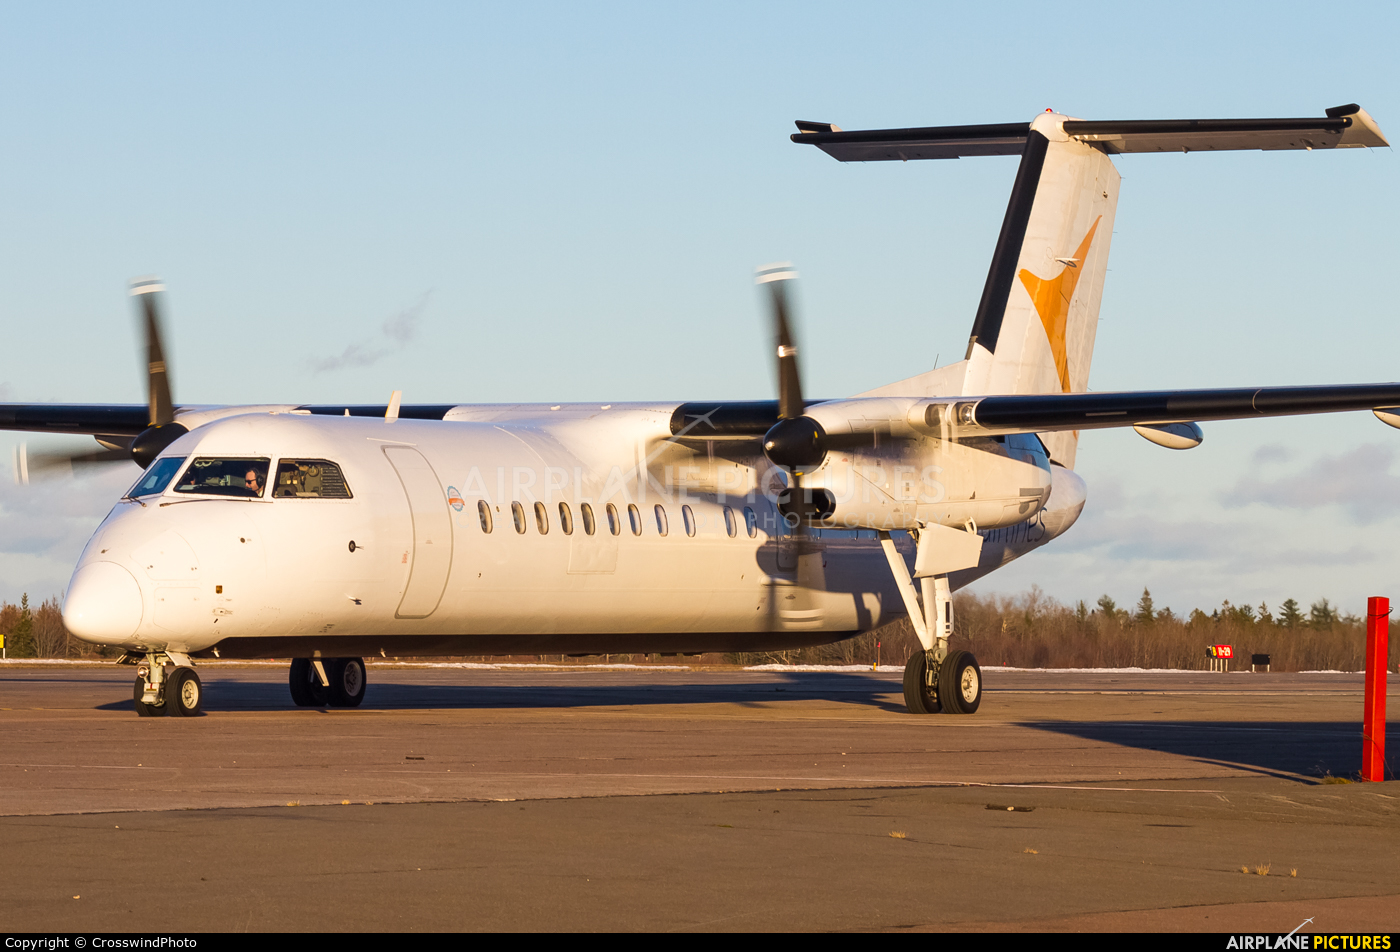 PAL Airlines C-GYCV aircraft at greater Moncton International